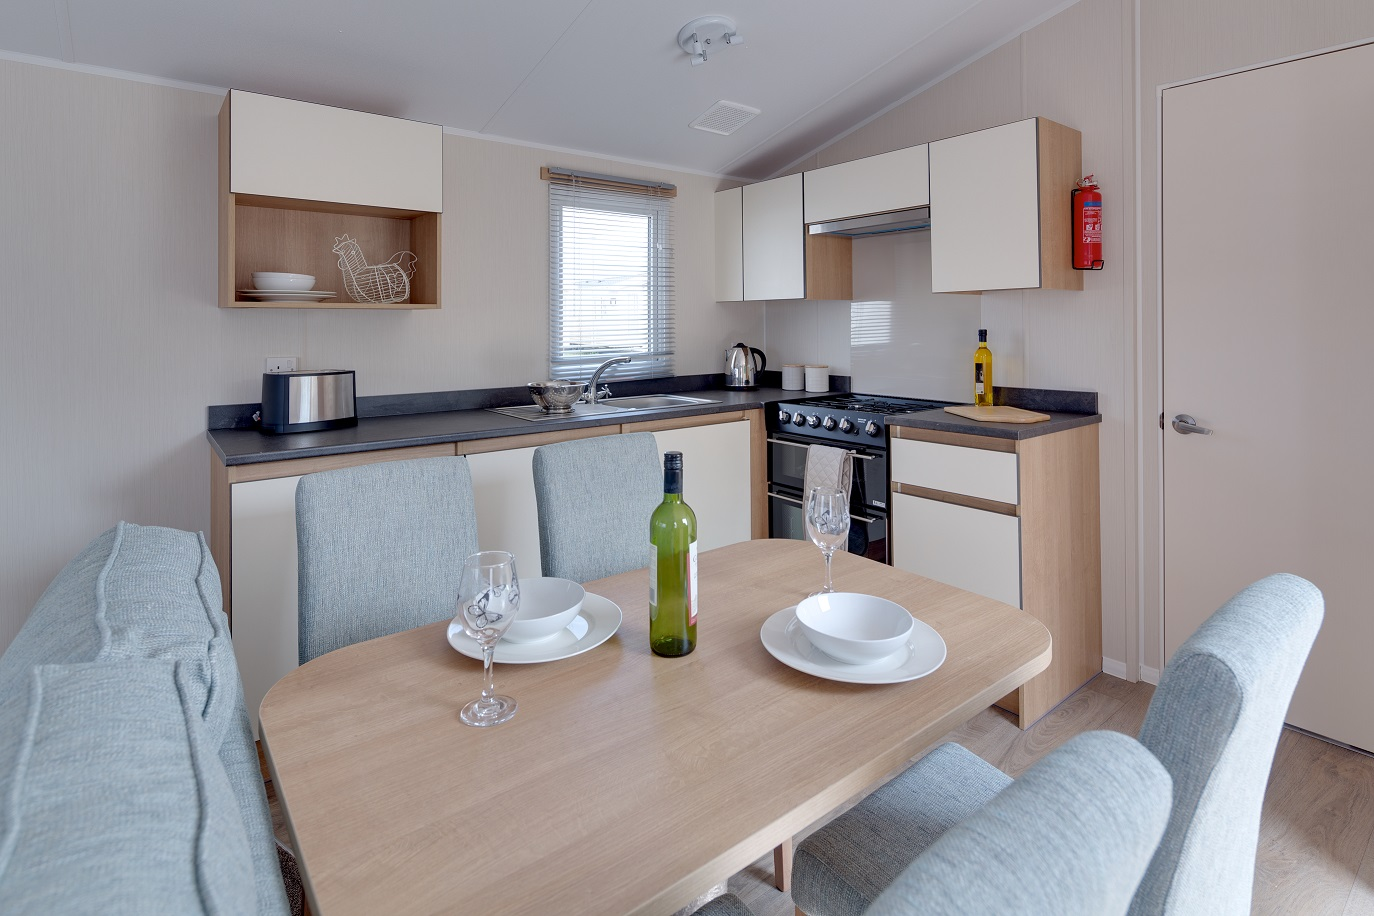 Willerby Ideal Mistral Plus+: Static Caravans and Holiday Homes for Sale on Caravan Parks, Bamburgh, Northumberland Large Image 3